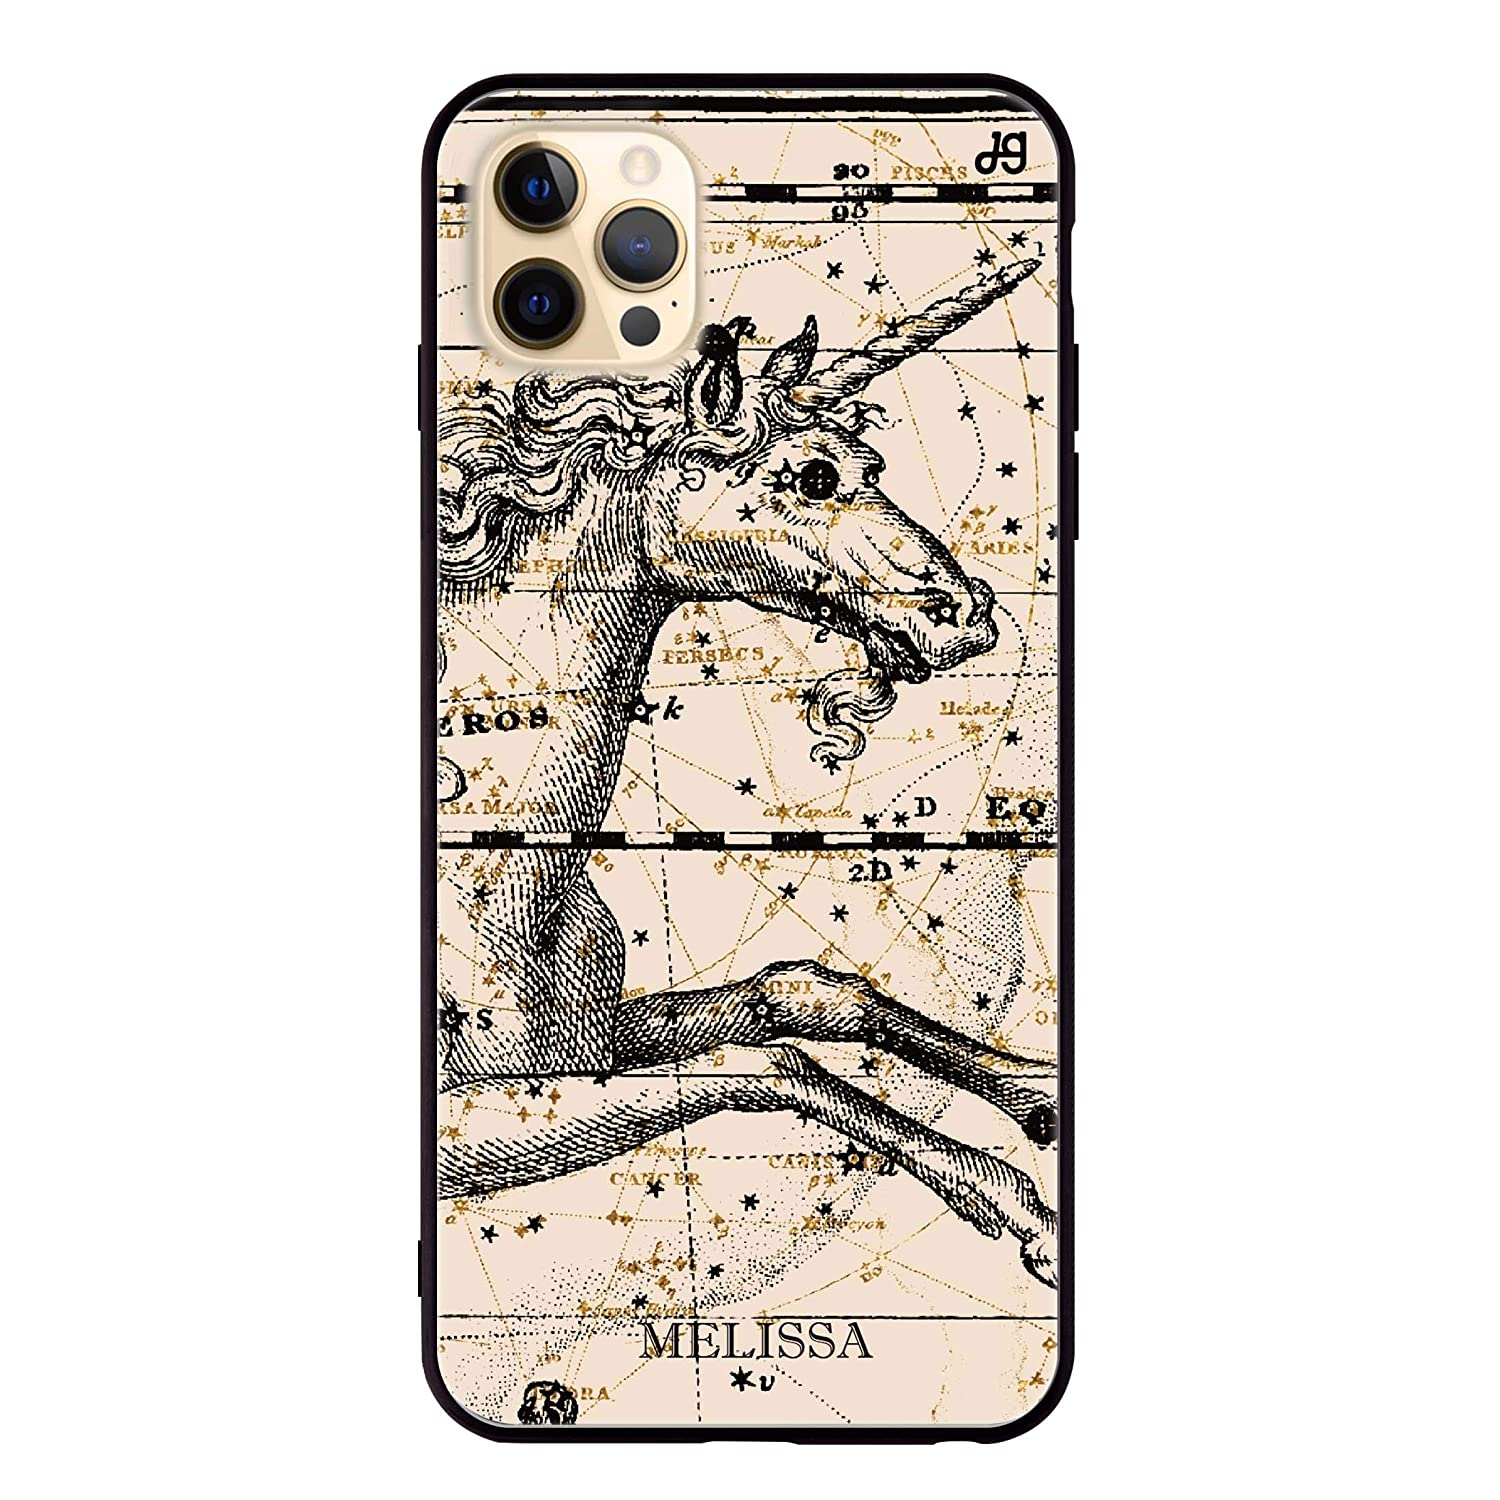 Star Map Unicorn Recommended iPhone 12 Max Glass New Shipping Free Shipping Pro Case